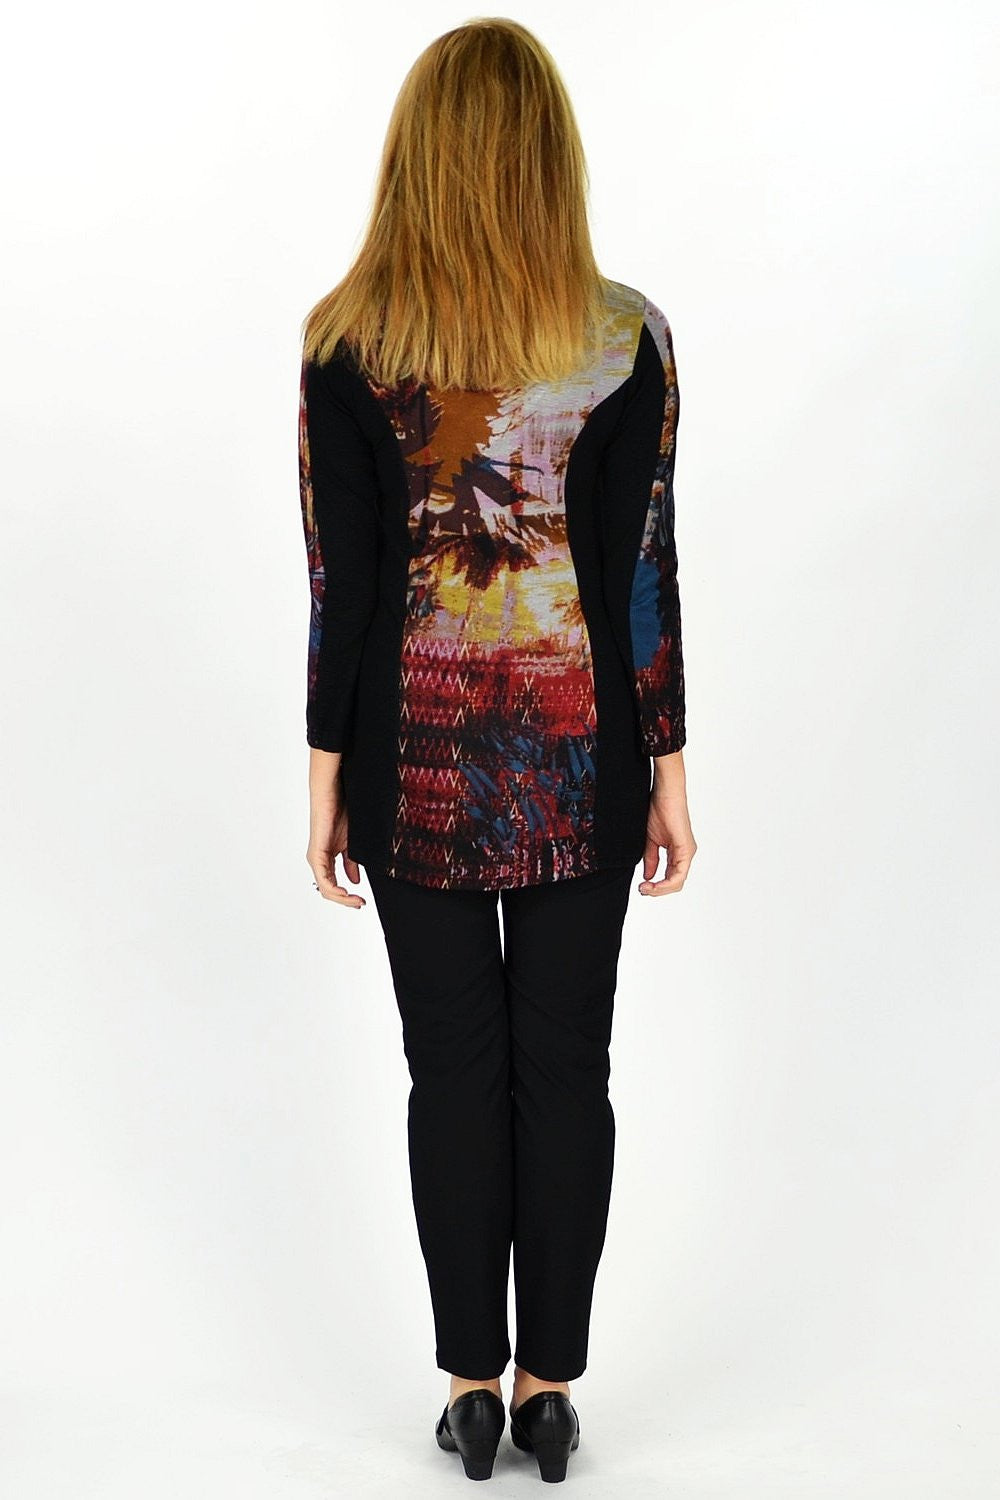 Bali Tunic - at I Love Tunics @ www.ilovetunics.com = Number One! Tunics Destination